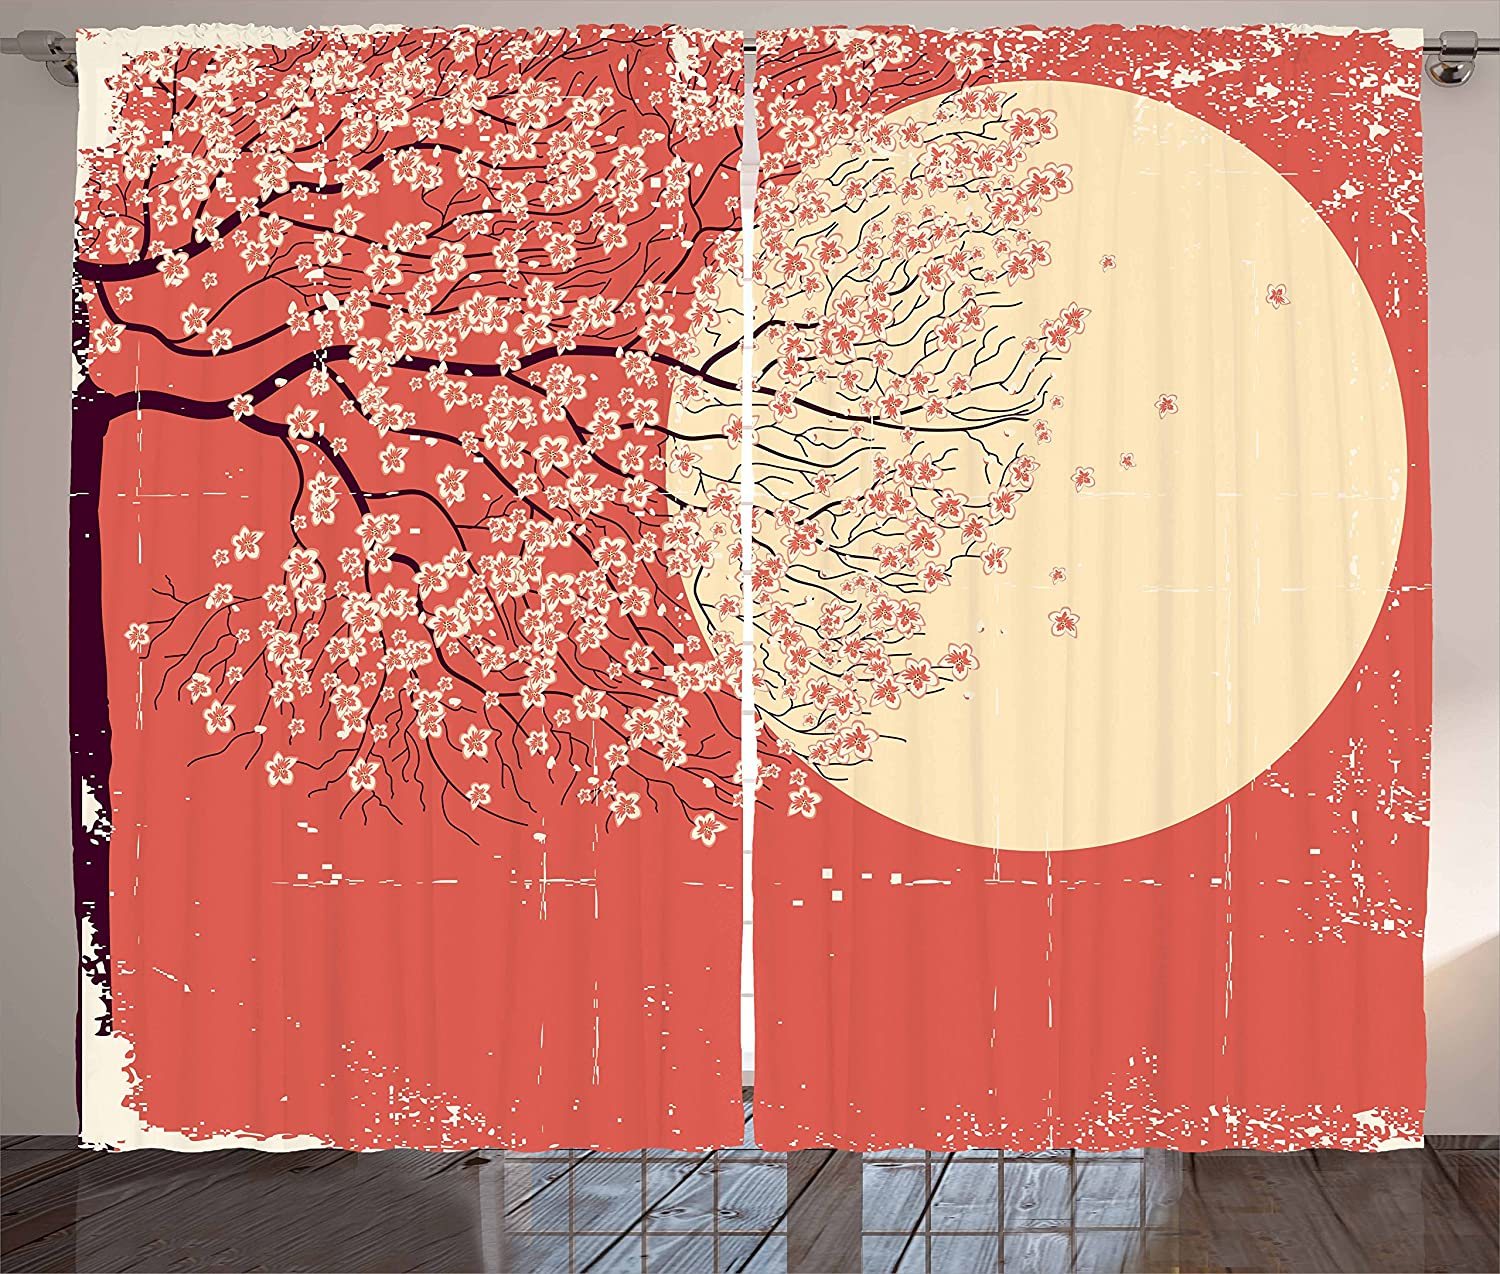 Ambesonne Spring Curtains, Cherry Blossom Sakura Tree Branches on Moon Japanese Style Illustration, Living Room Bedroom Window Drapes 2 Panel Set, 108 W X 84 L Inches, Coral Pale Yellow Plum